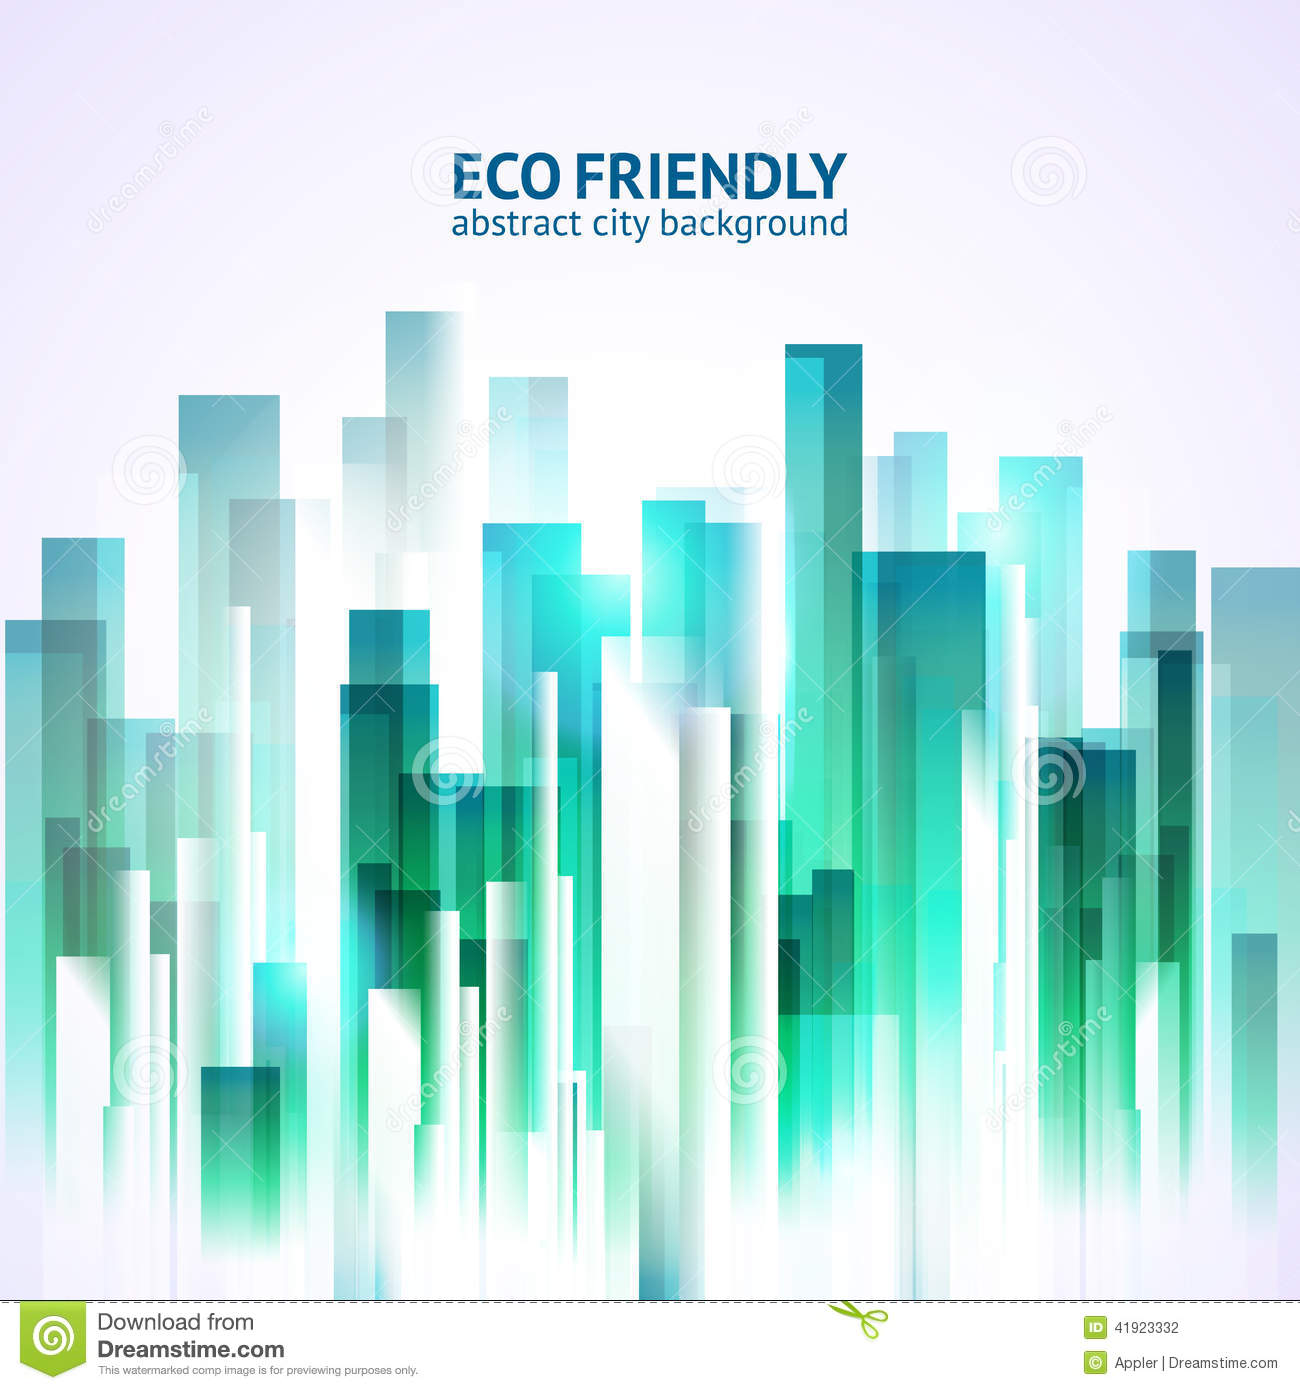 eco friendly abstract city background stock vector illustration of